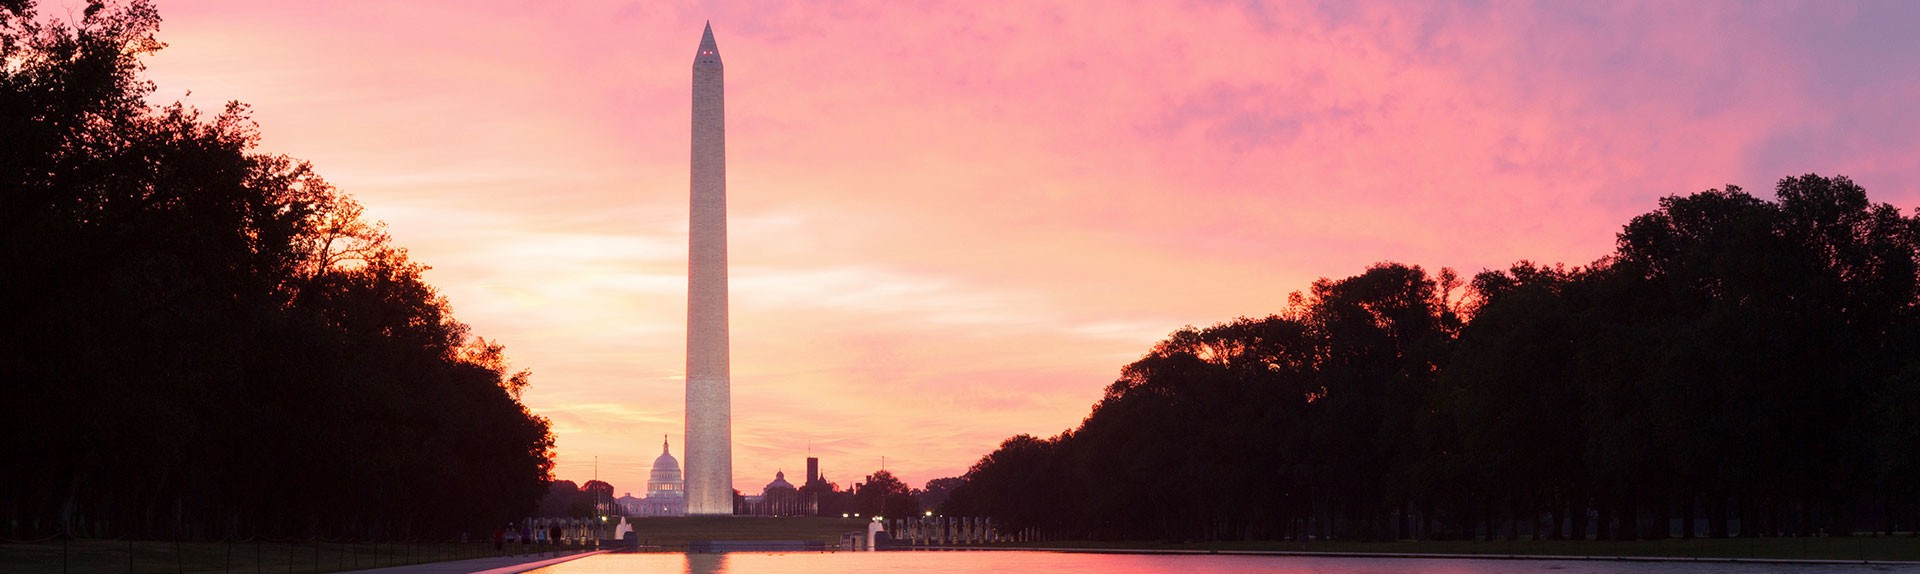 Key Attractions th in Washington, District of Columbia